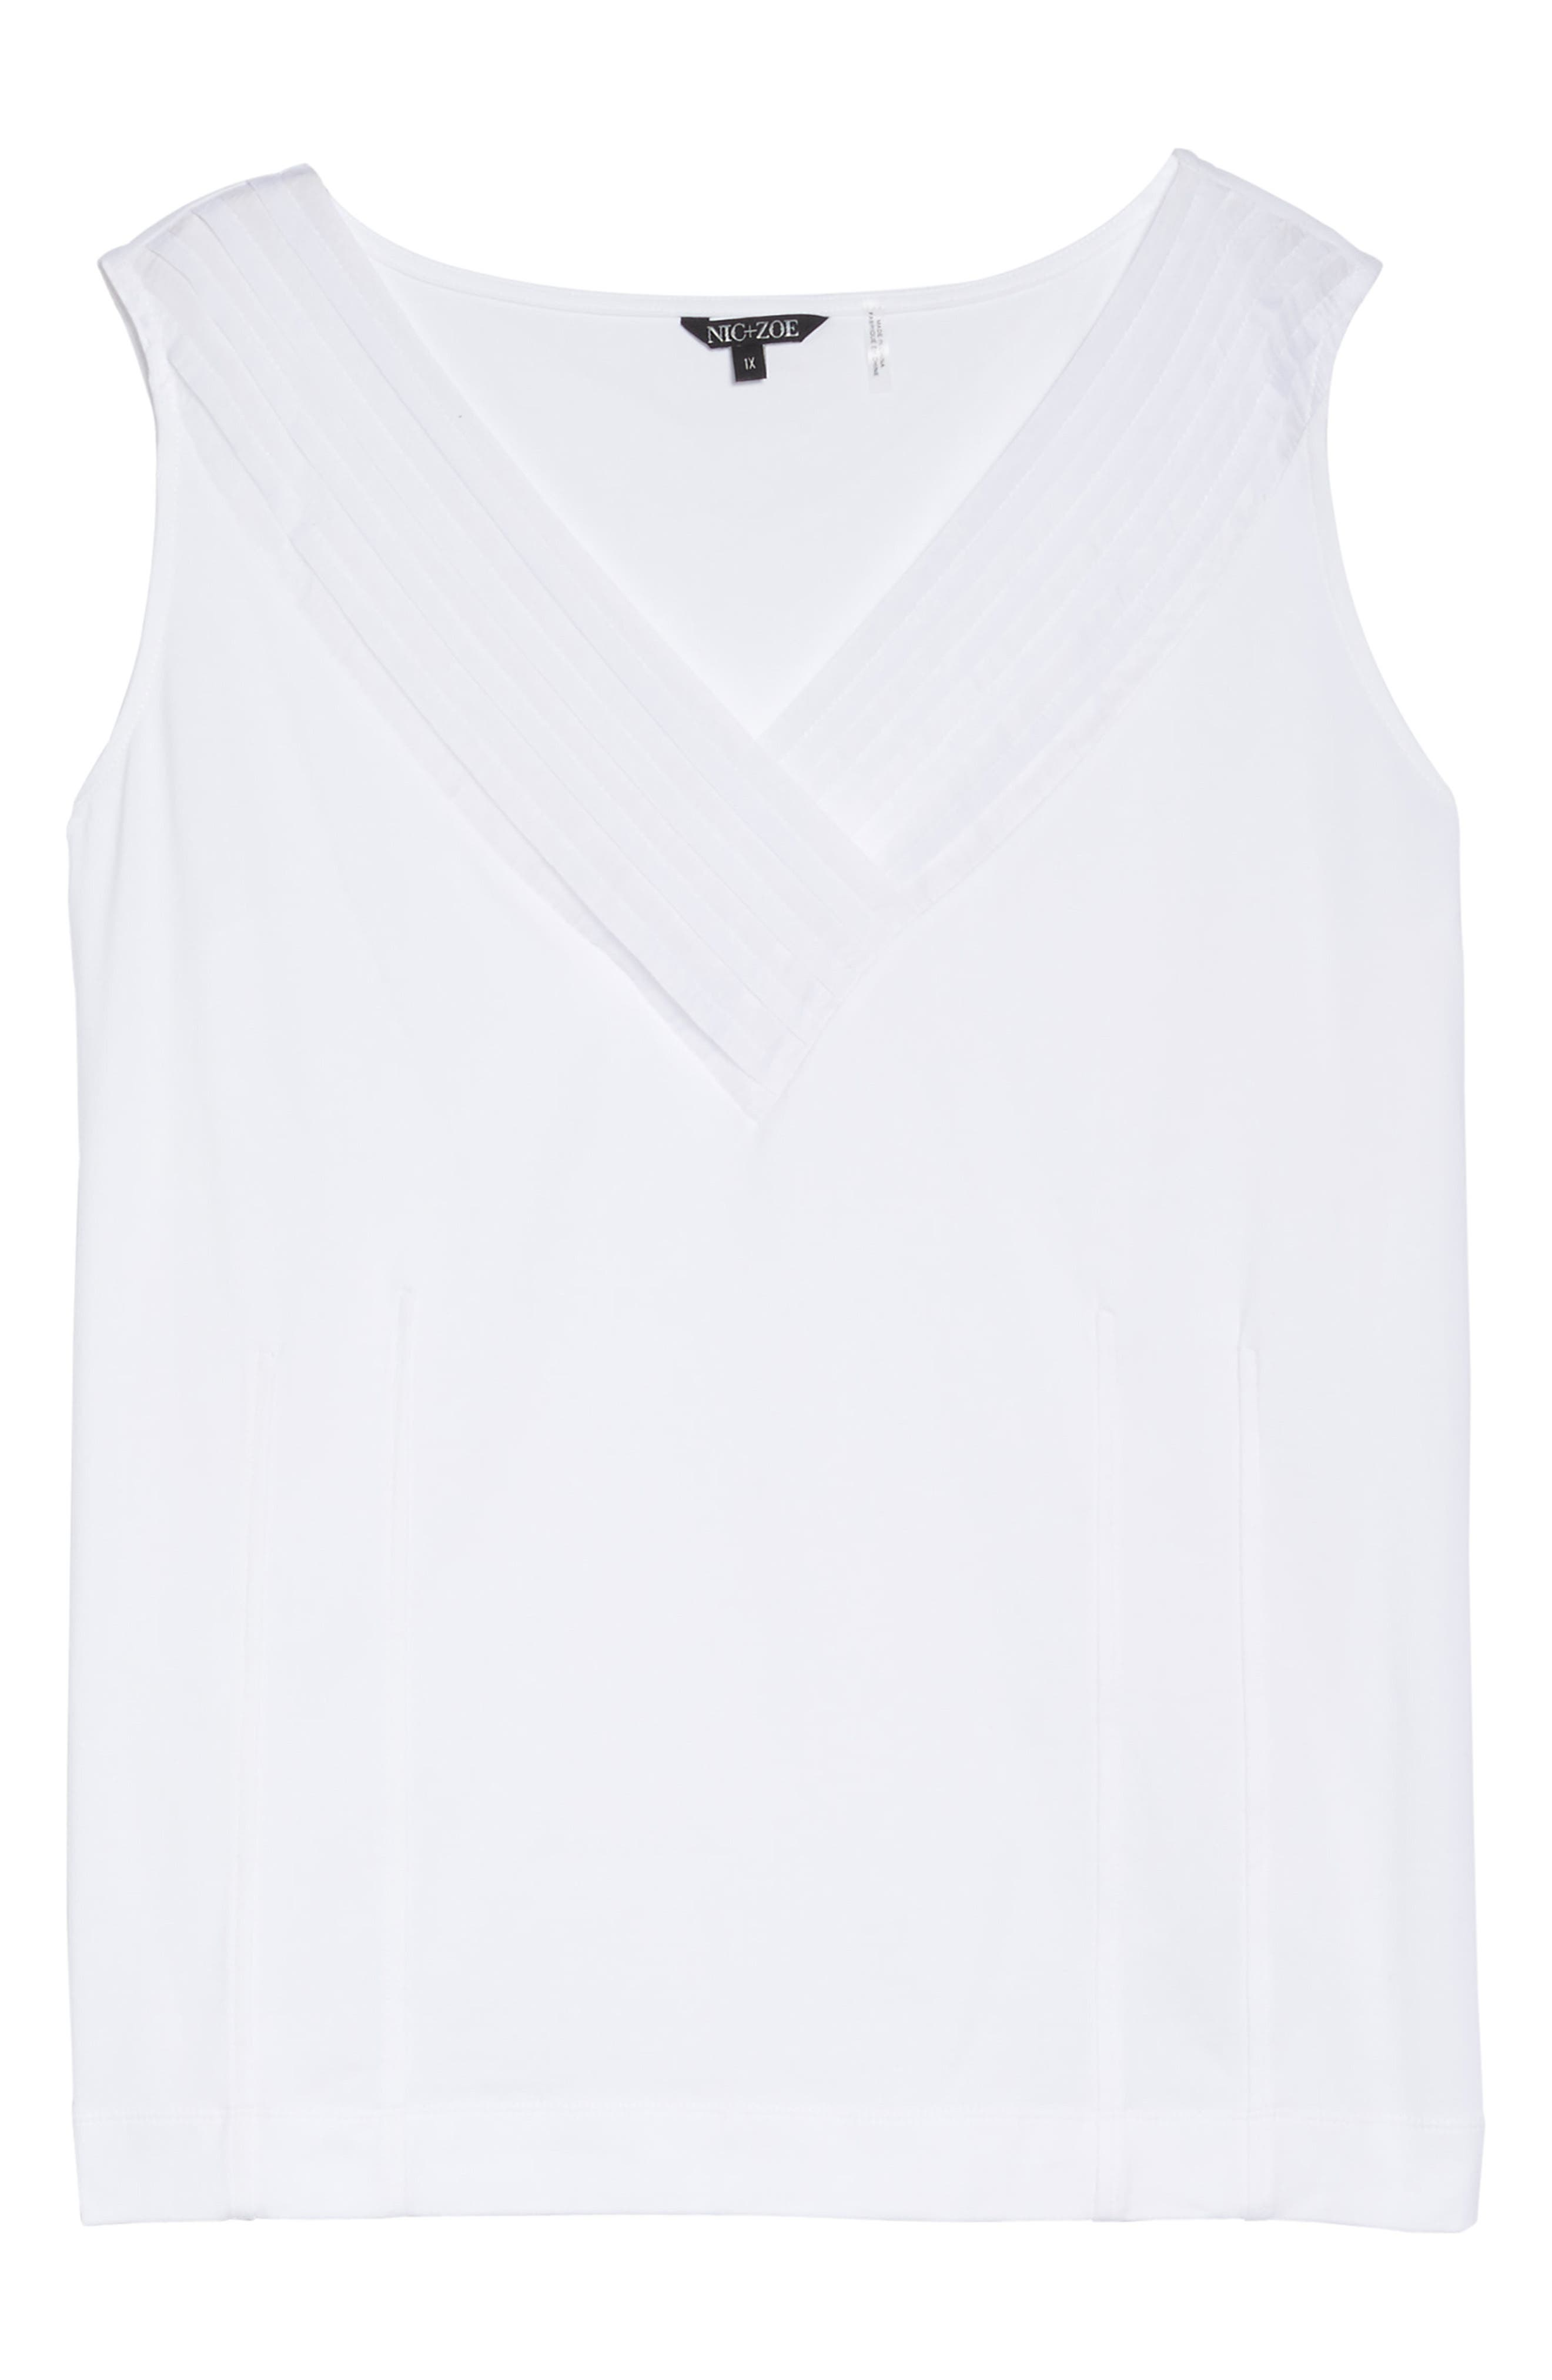 'Sweet Pleat' Sleeveless Top,                             Alternate thumbnail 6, color,                             123